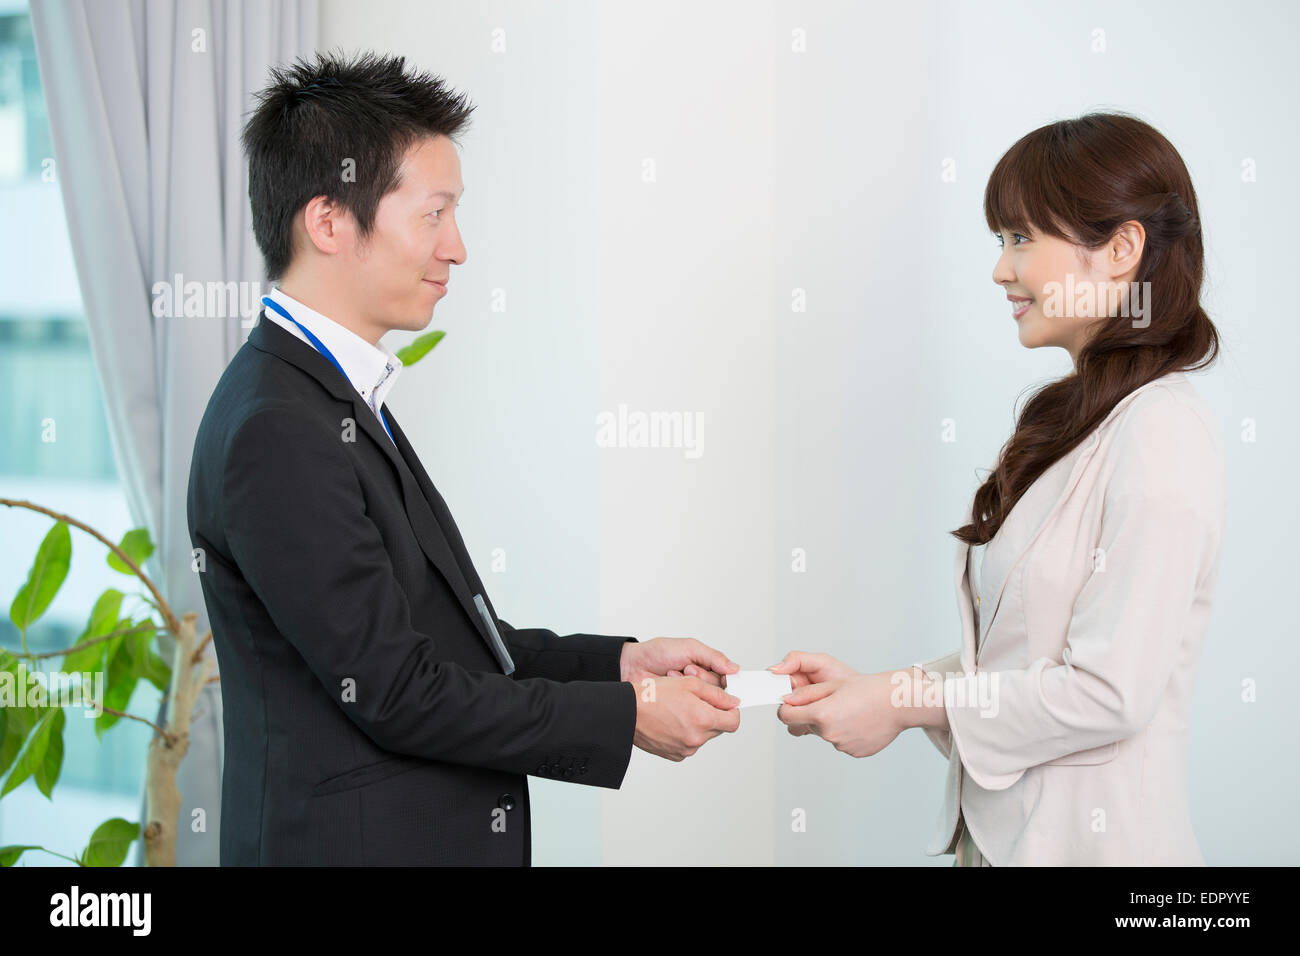 Exchanging business cards japan choice image card design and business people exchanging business cards stock photo royalty business people exchanging business cards reheart choice image reheart Image collections